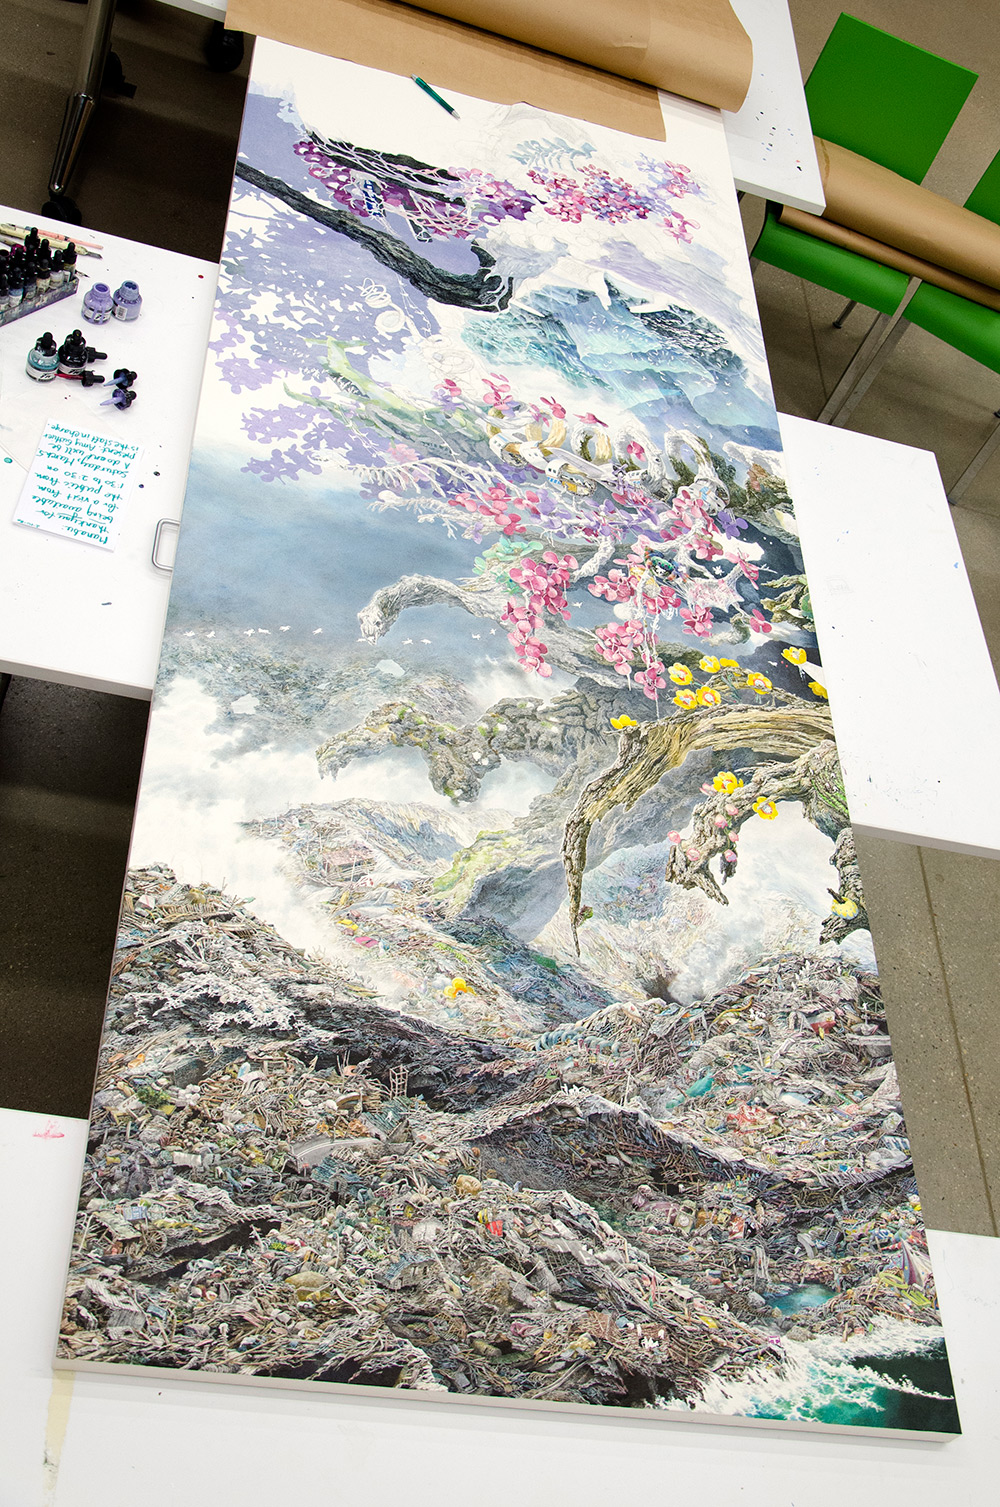 Rebirth in progress. Ikeda's time spent in Madison wasn't without its own adversity. The artist disl